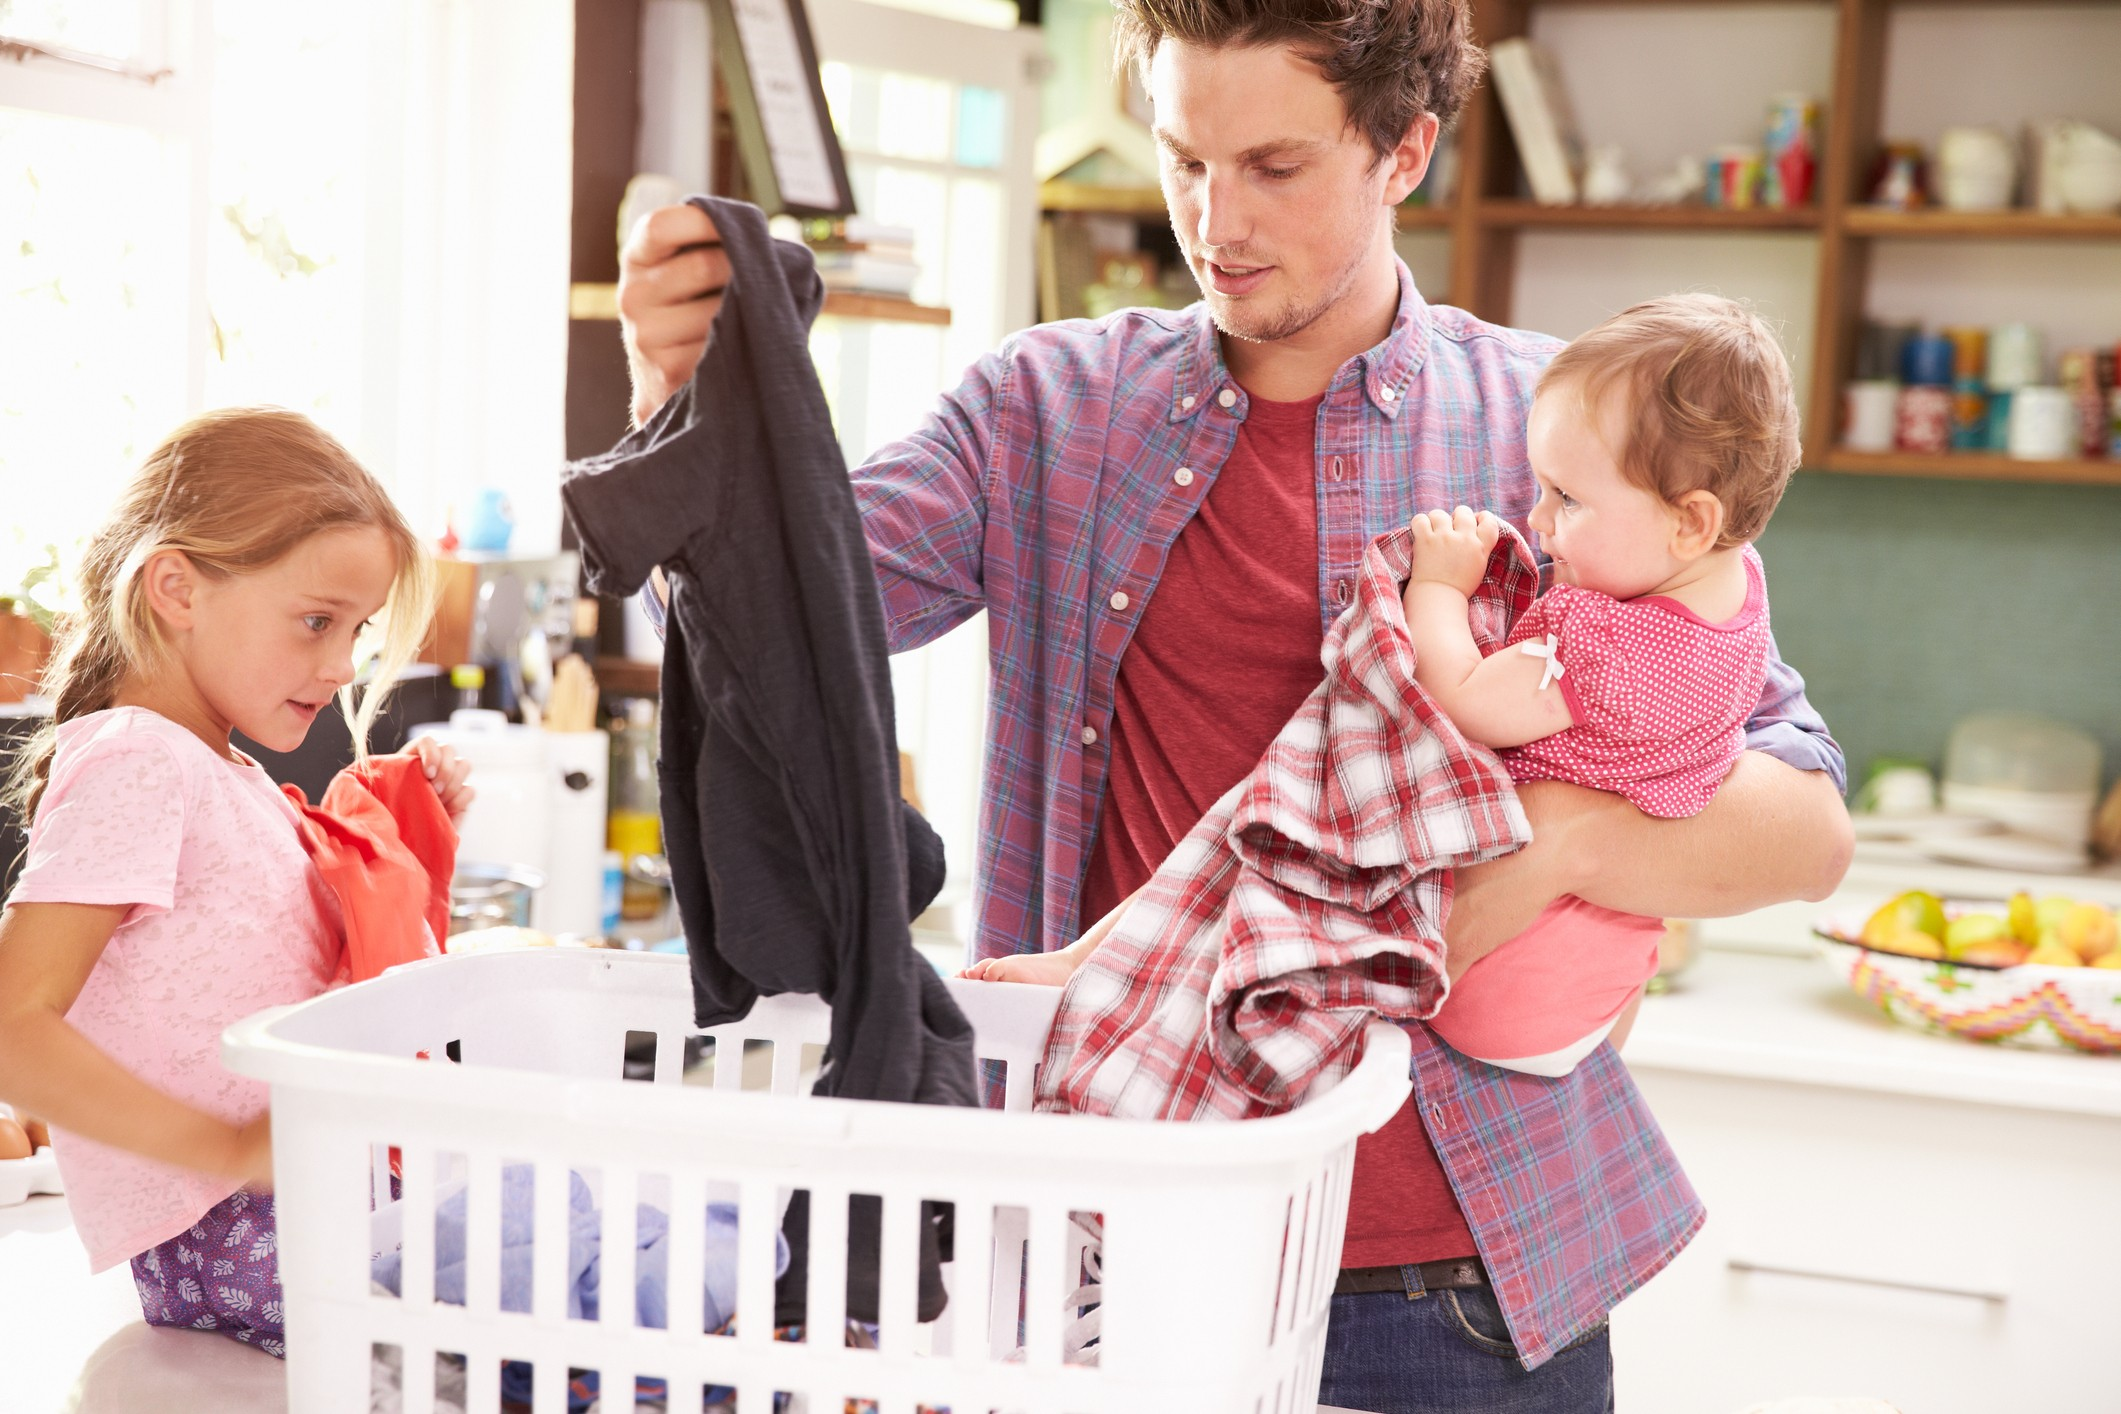 dad and young children sorting laundry